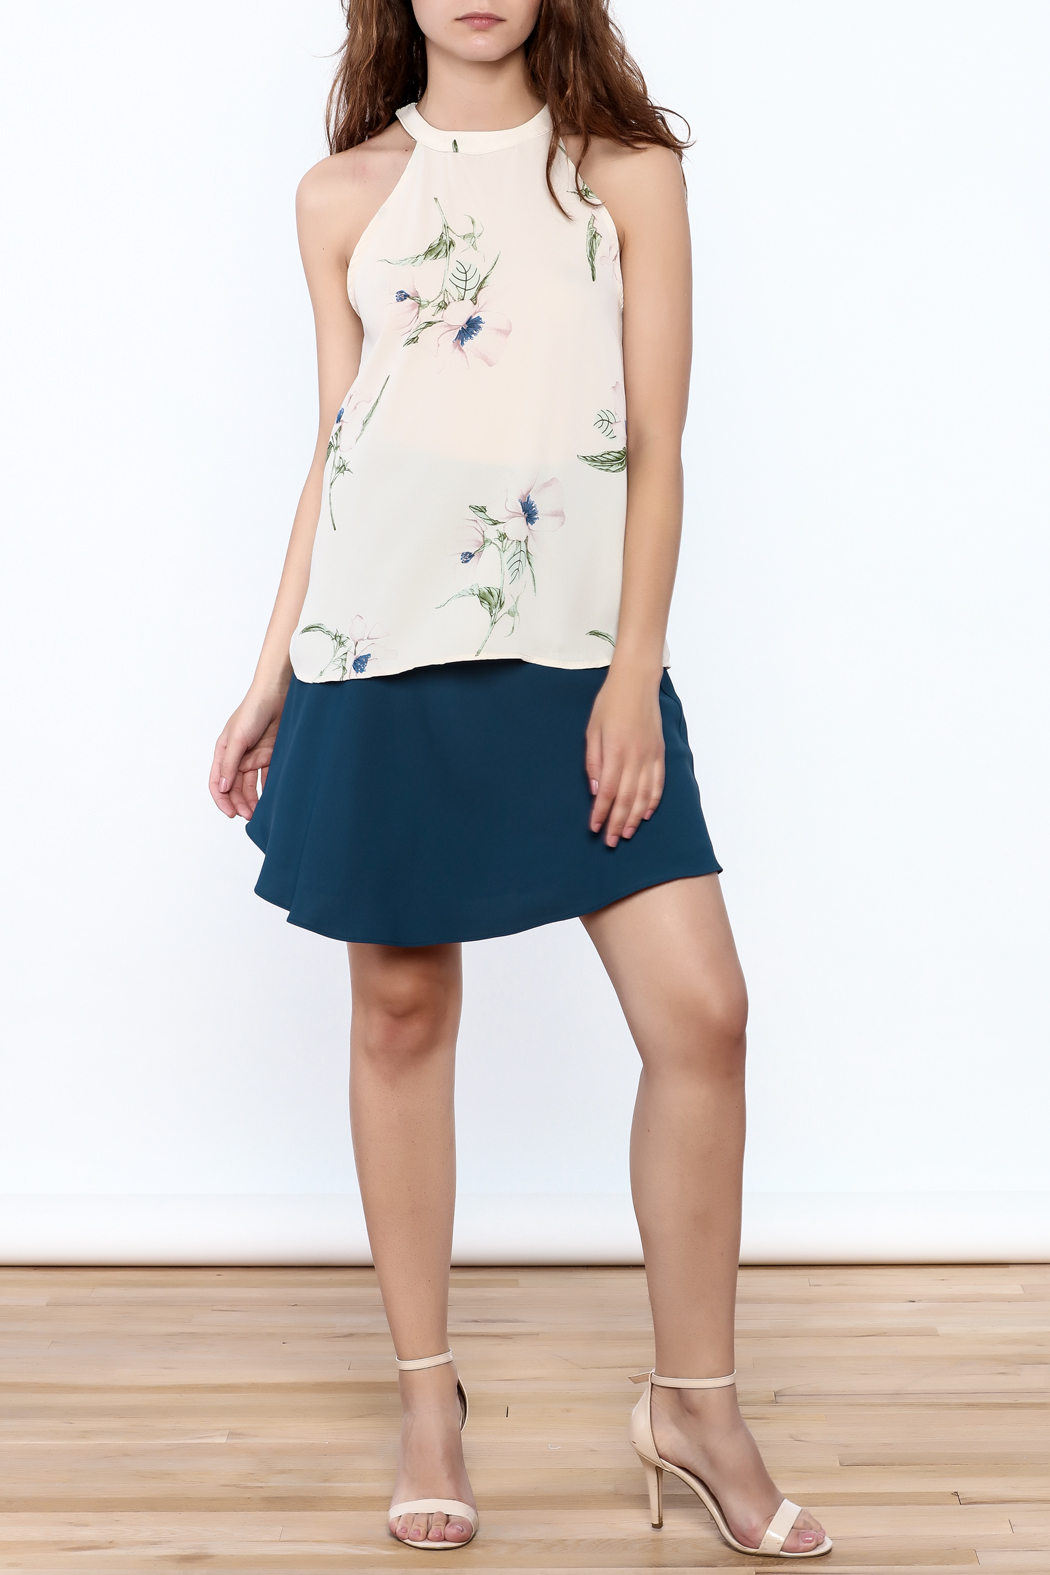 Audrey Beige Floral Printed Top - Front Full Image